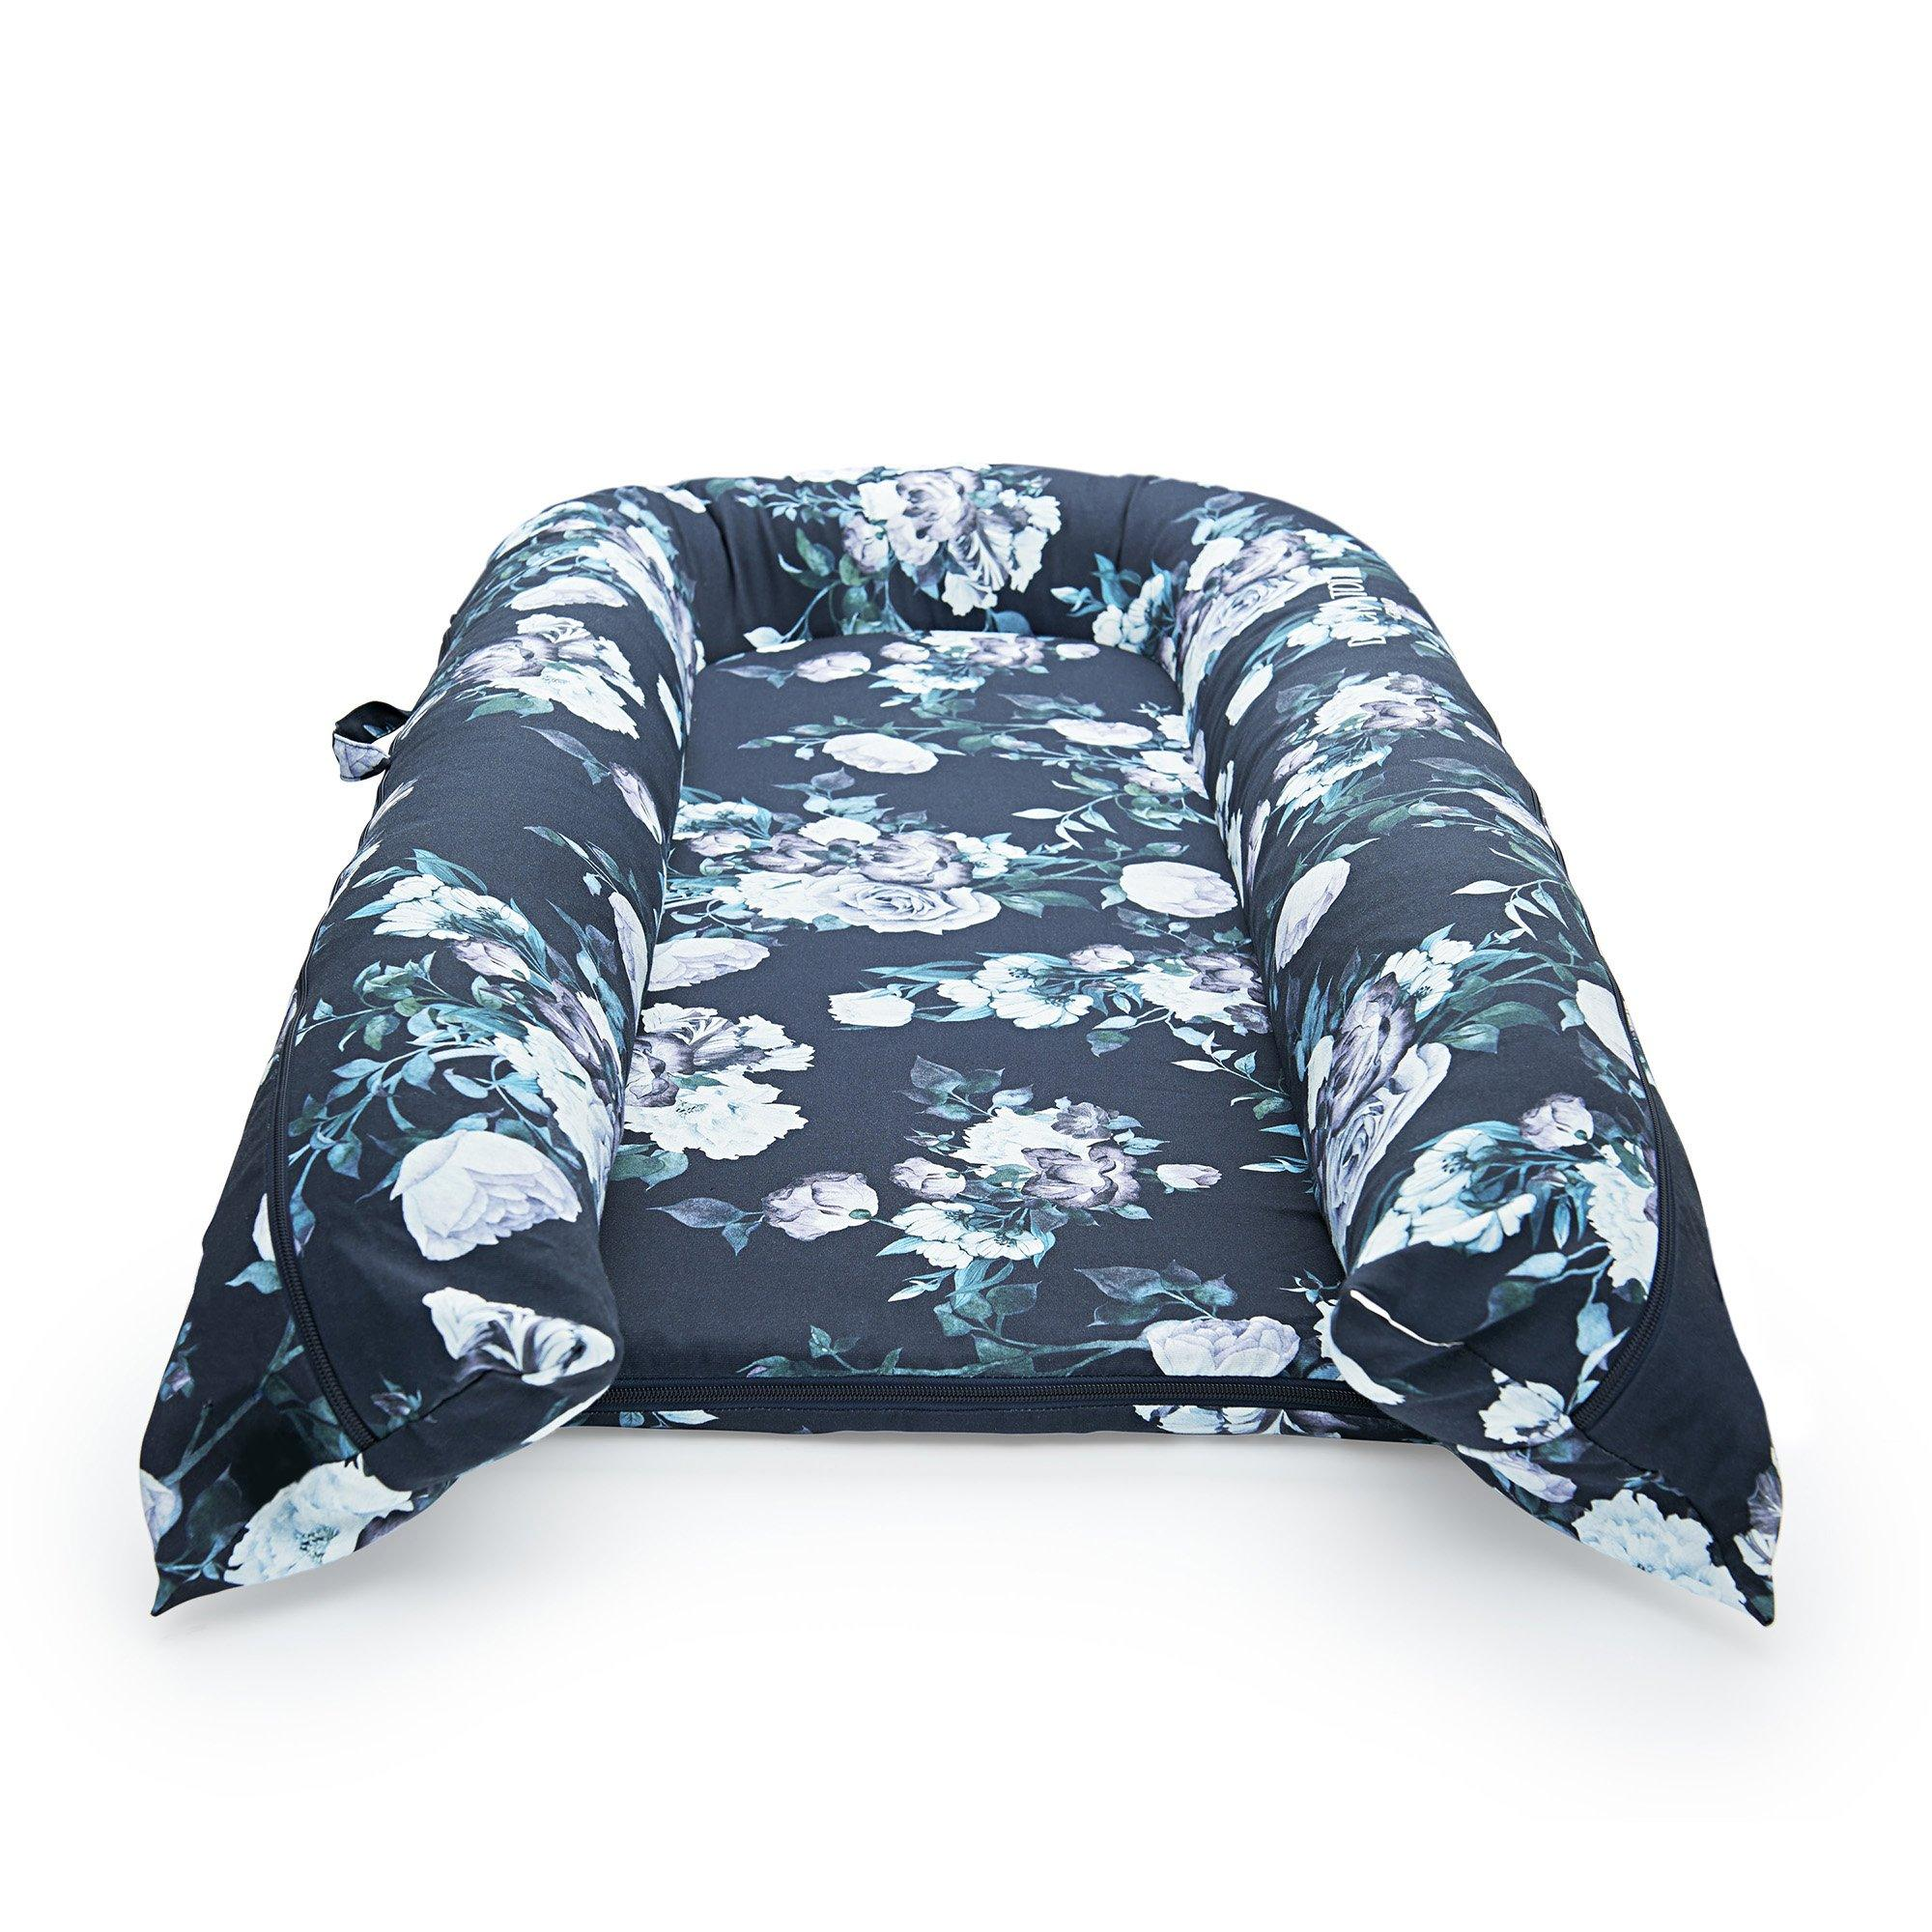 DockATot Grand Dock Cover - Midnight Garden - Project Nursery